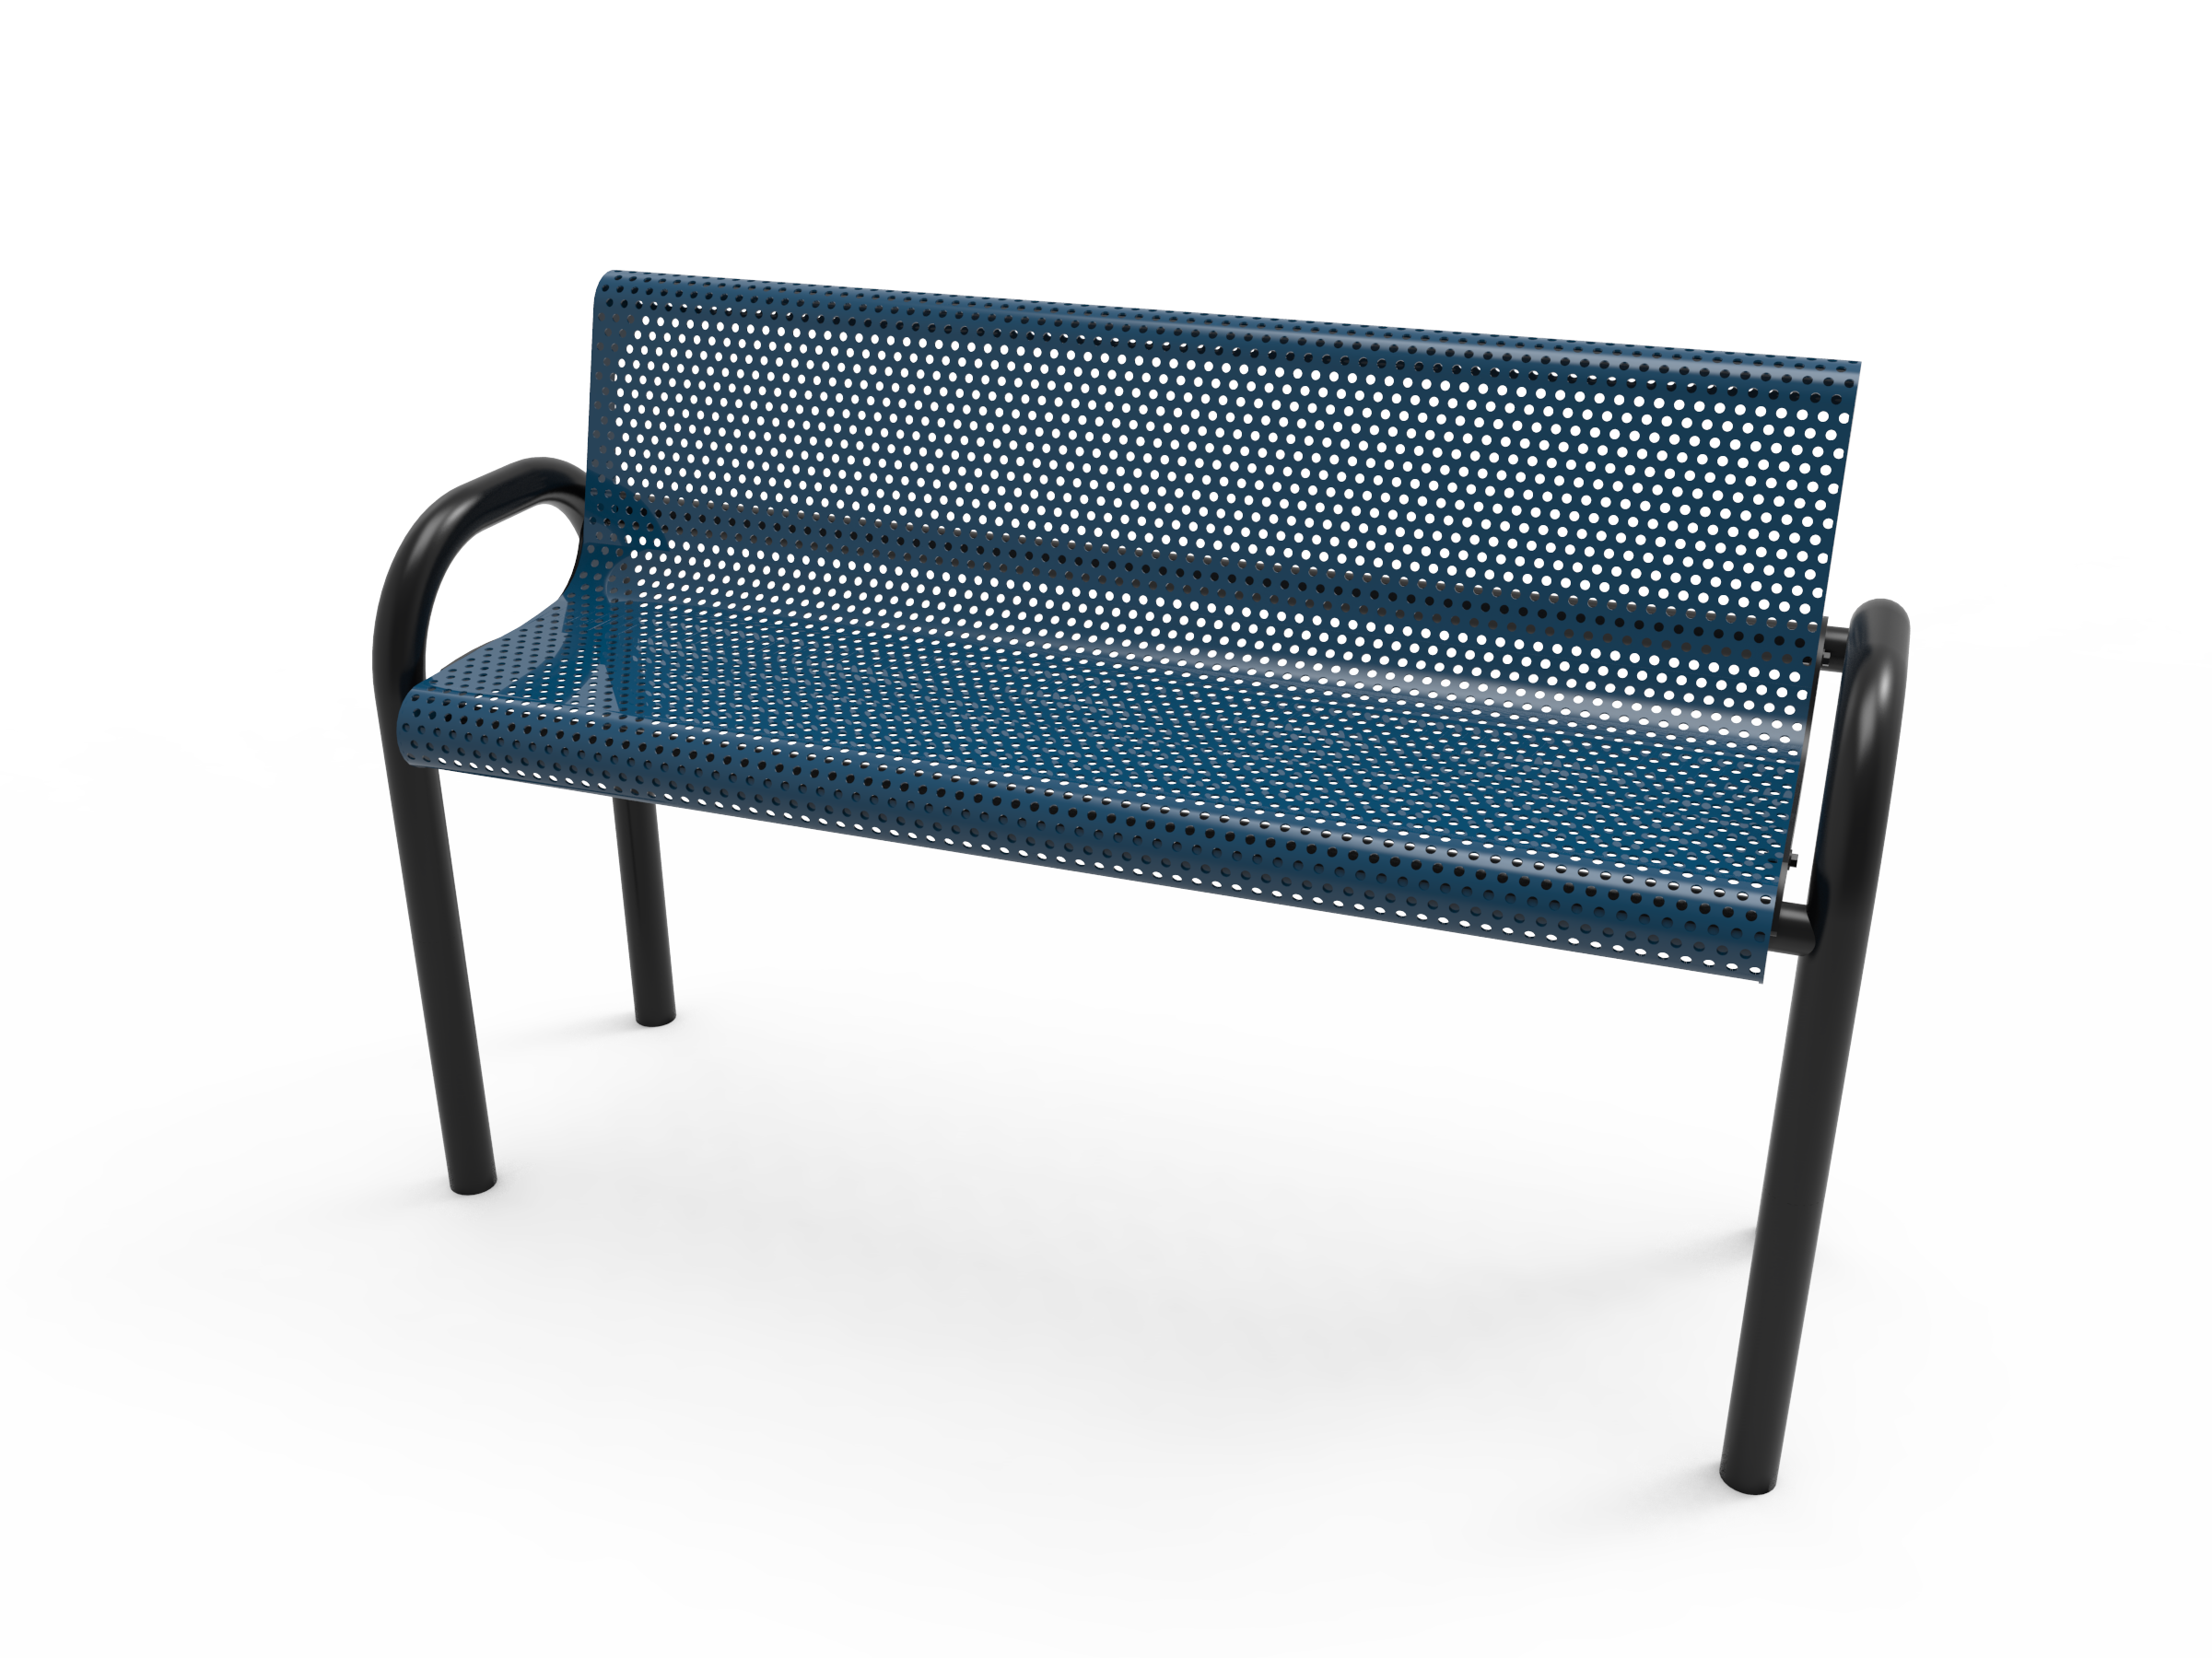 4' Lexington MOD Bench with Back